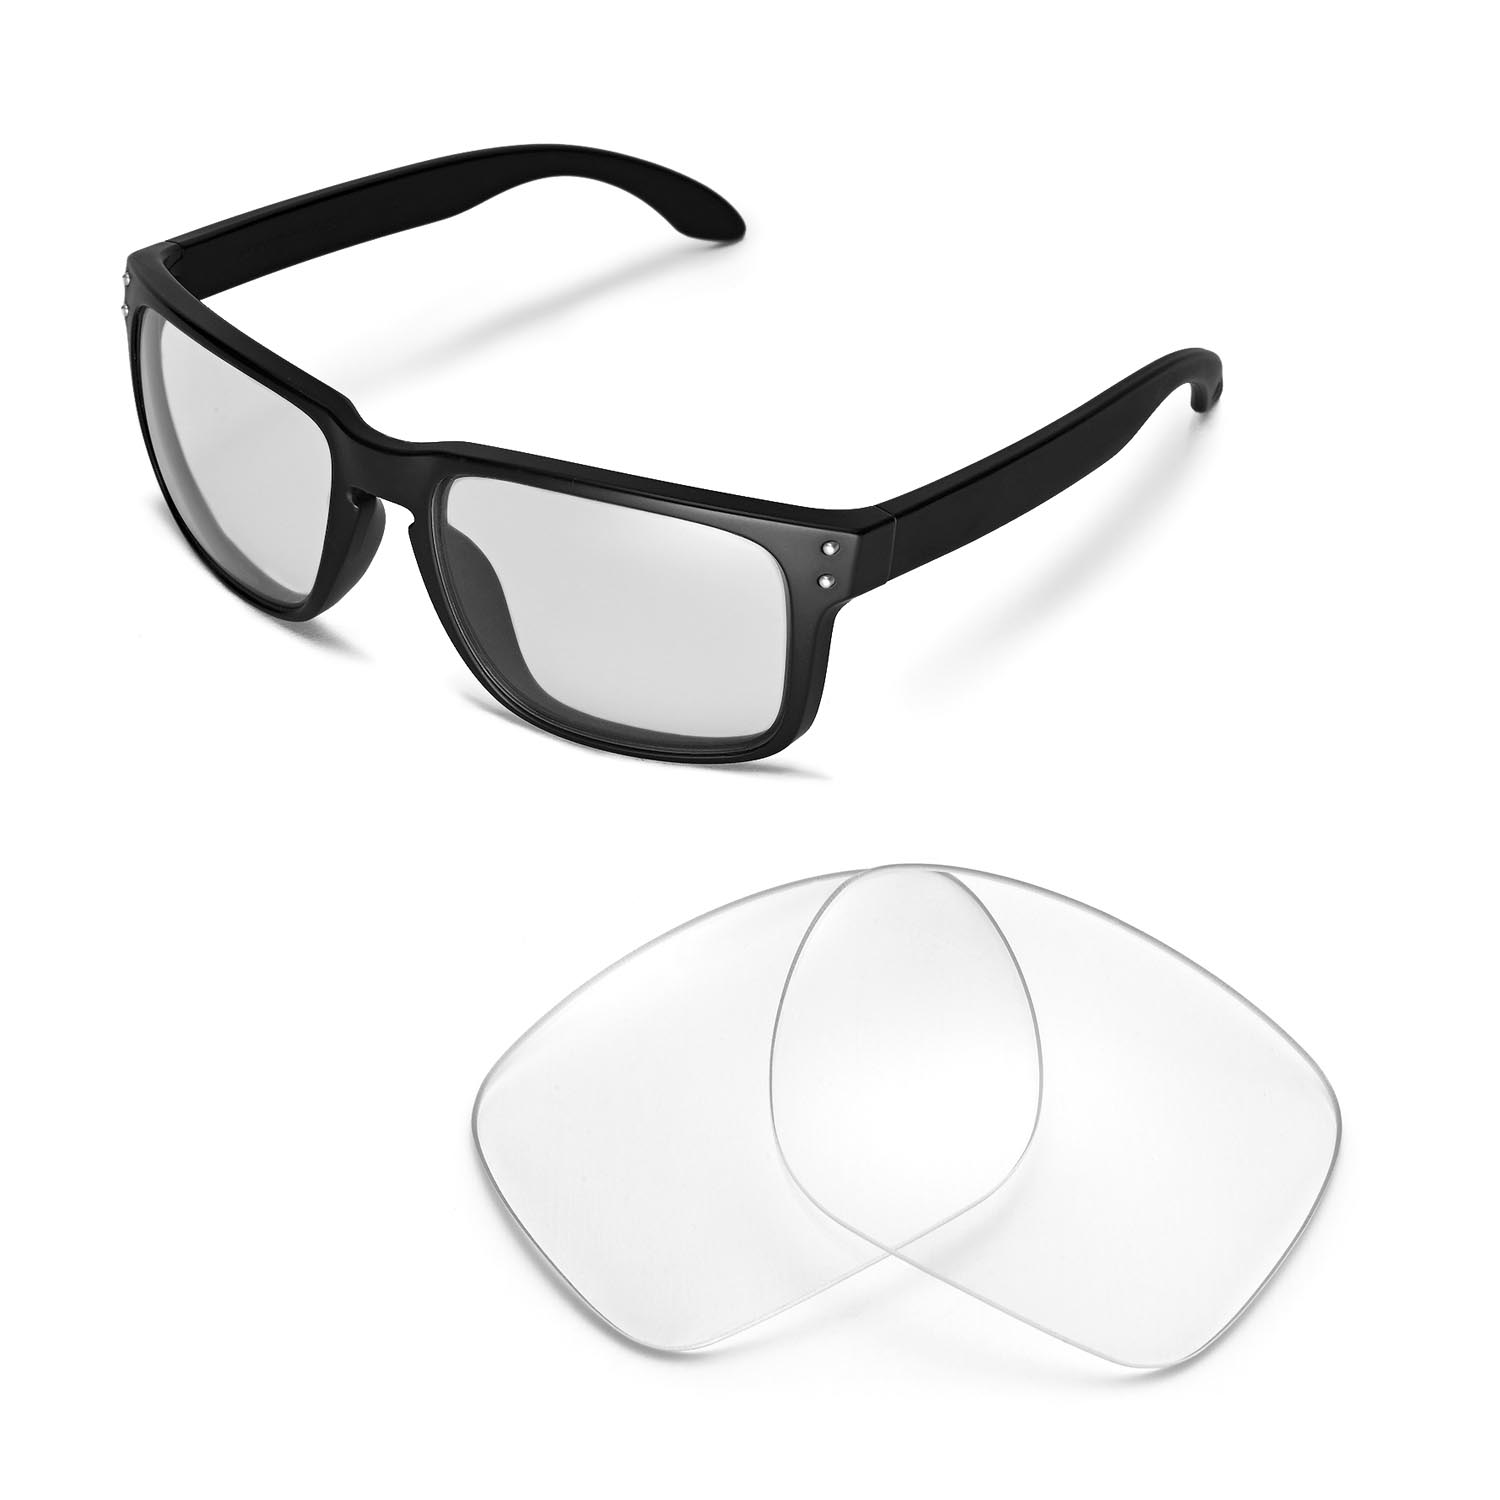 oakley holbrook sunglasses  Walleva Replacement Lenses for Oakley Holbrook Sunglasses ...